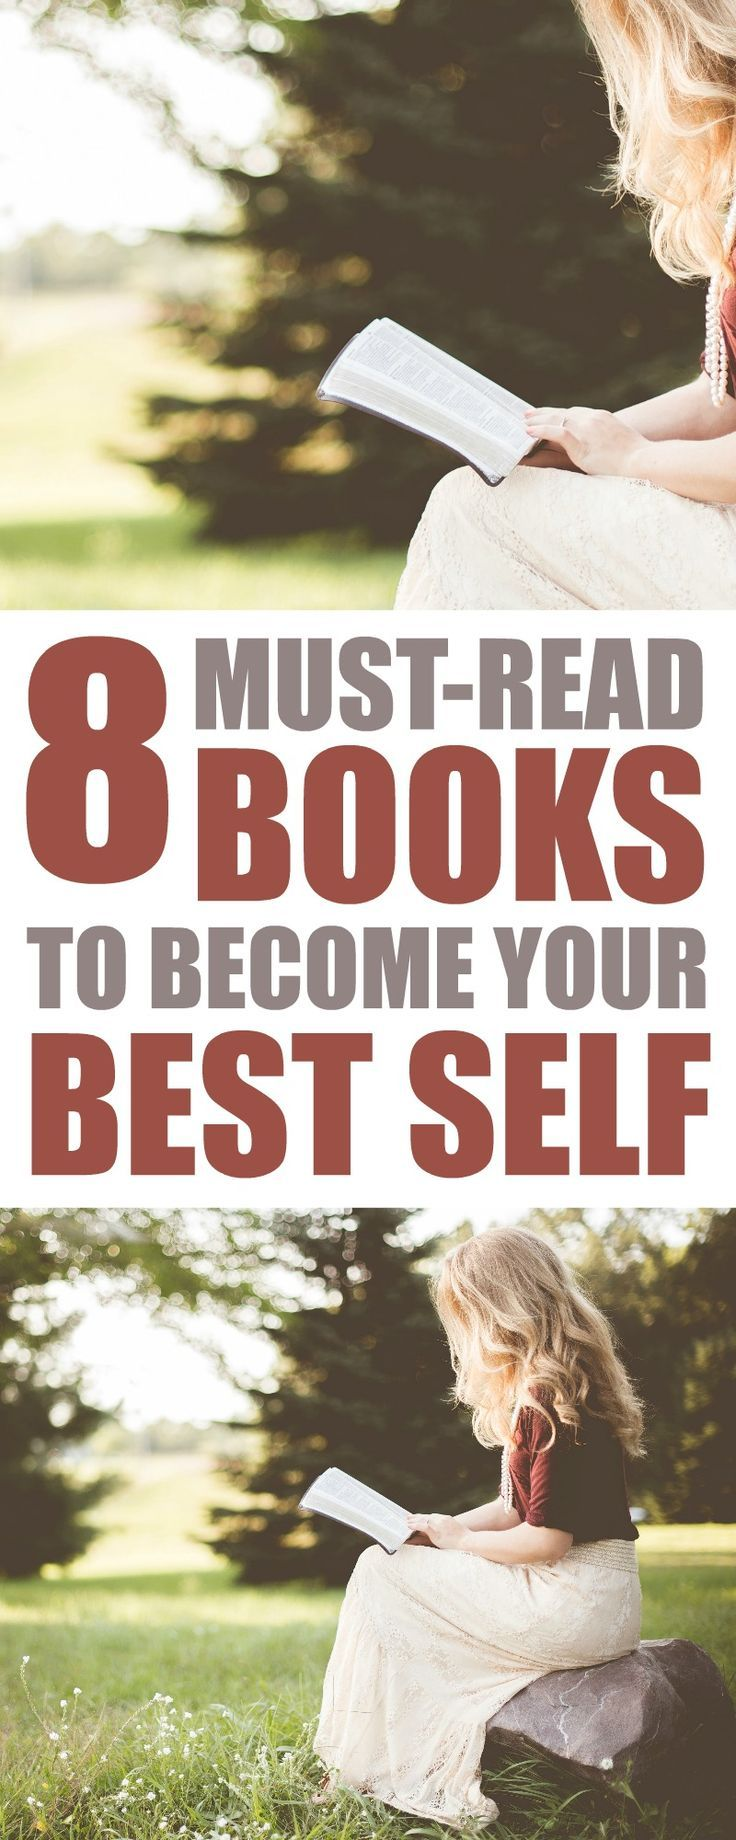 193 best book clubs for moms images on pinterest book lists diy 8 must read books to inspire change personal growth fandeluxe Choice Image